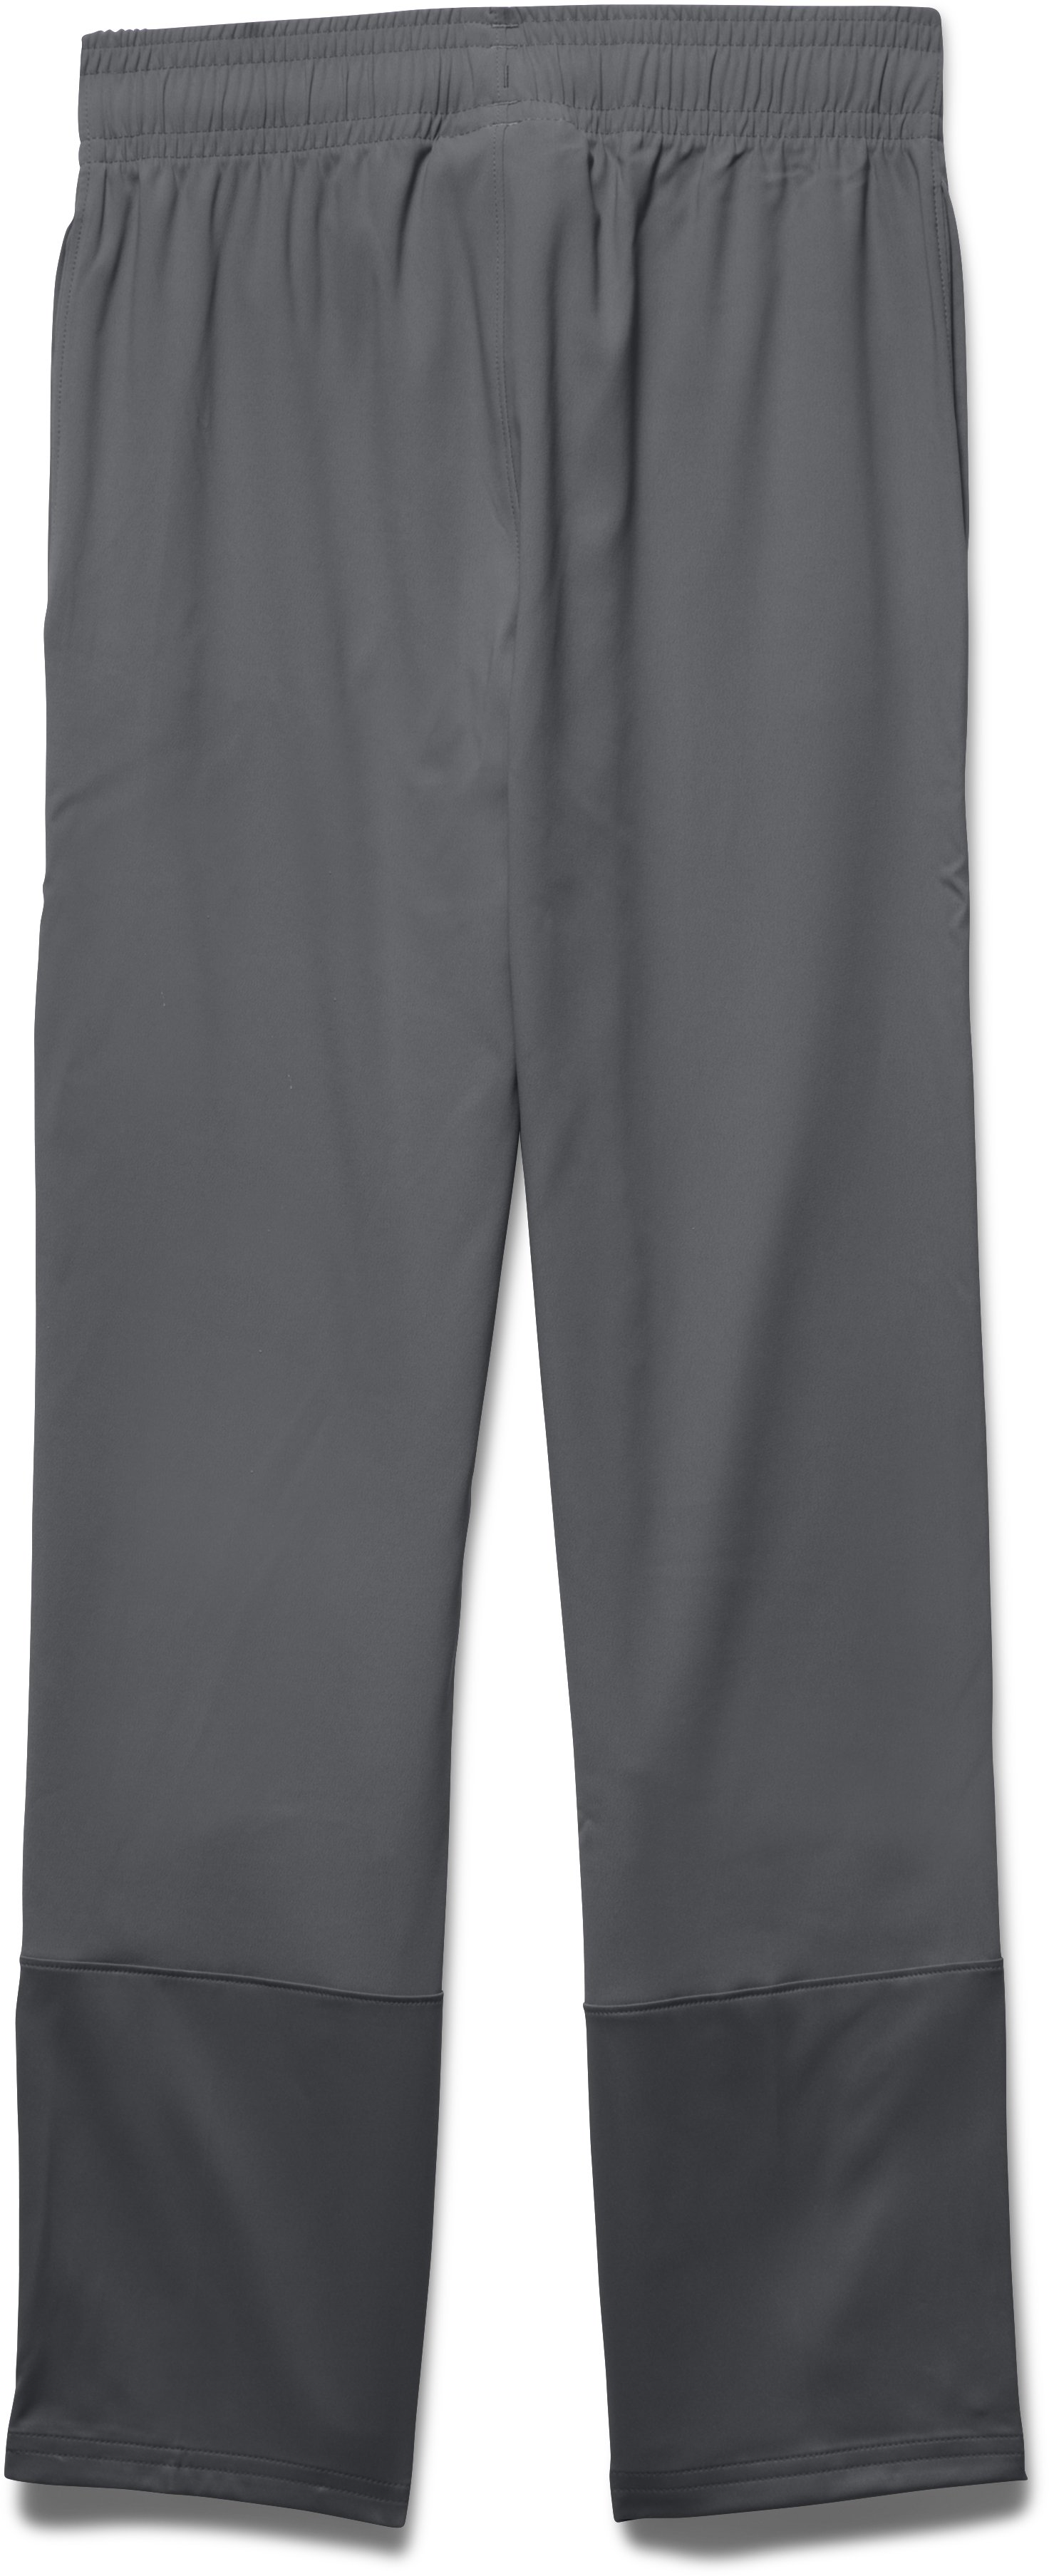 Girls' UA Pregame Woven Warm-Up Pants, Graphite,